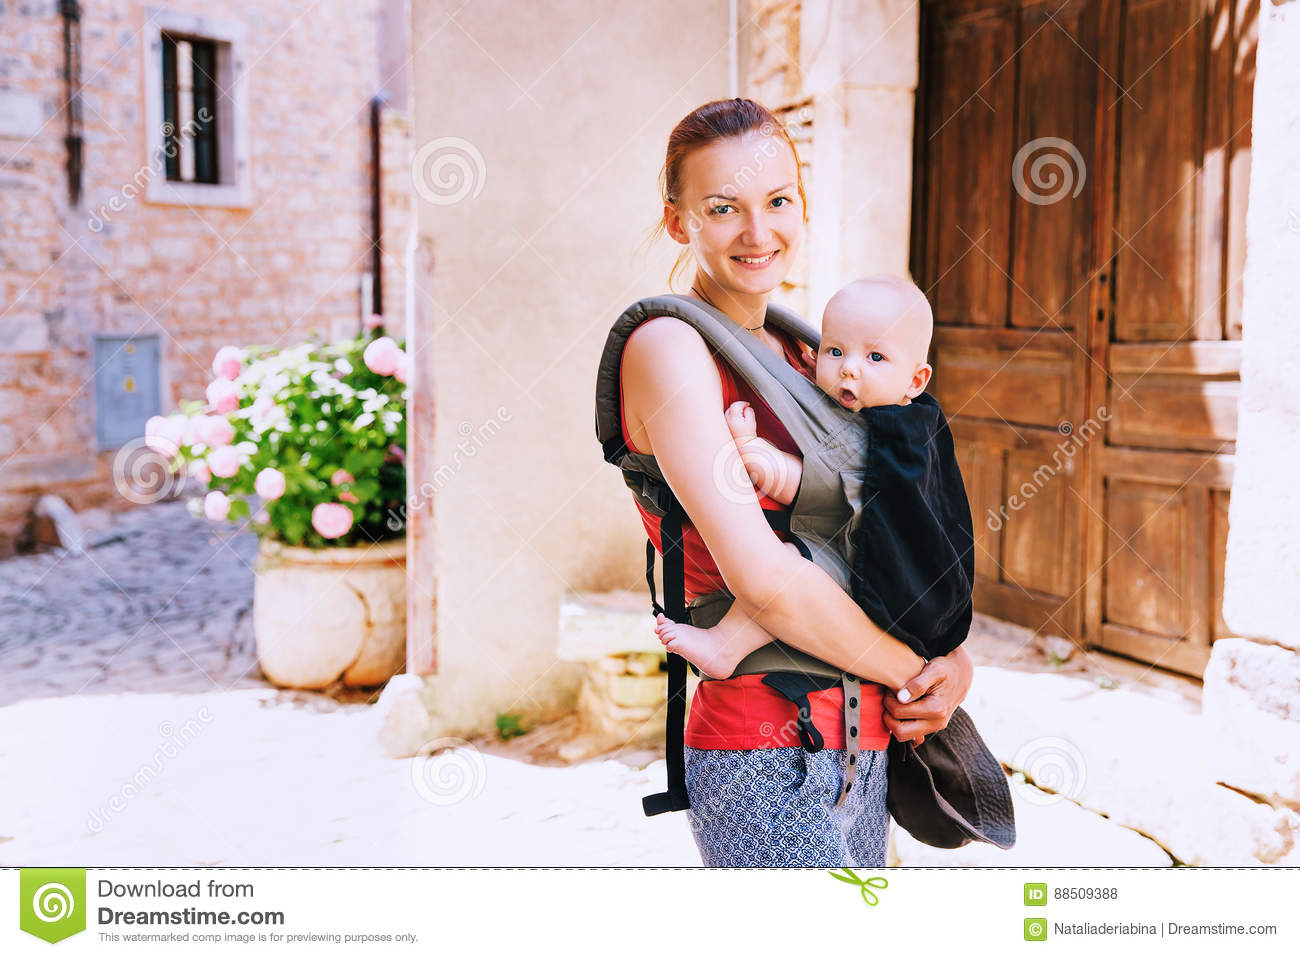 Mother With Baby In Carrier In The Old Town Of Pula, Croatia  Stock